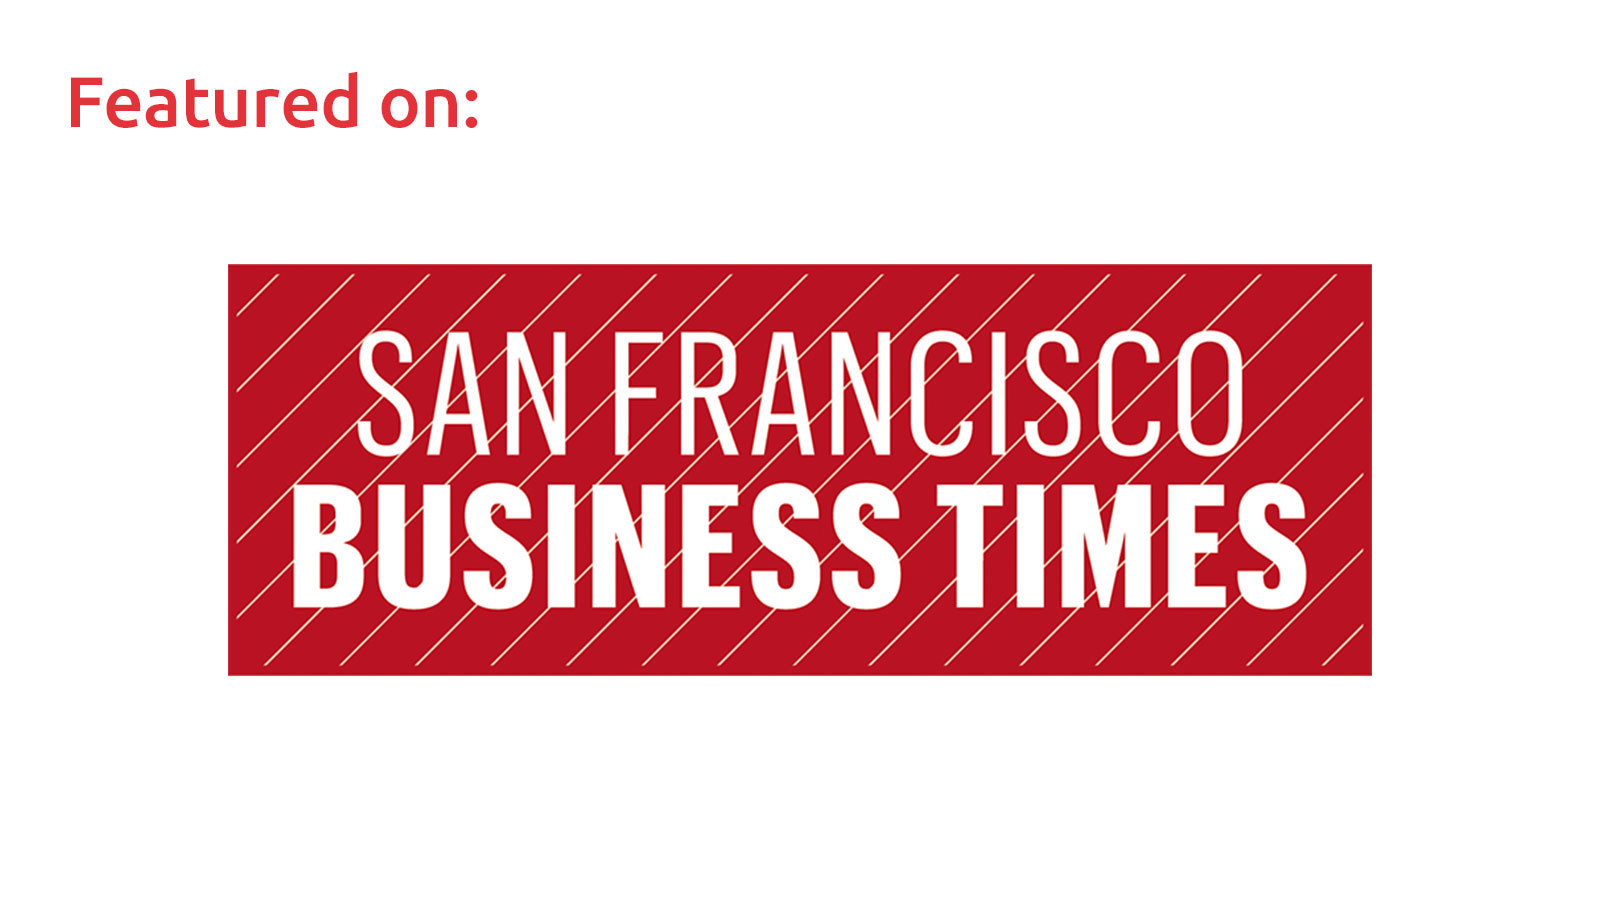 sf_business_times_logo